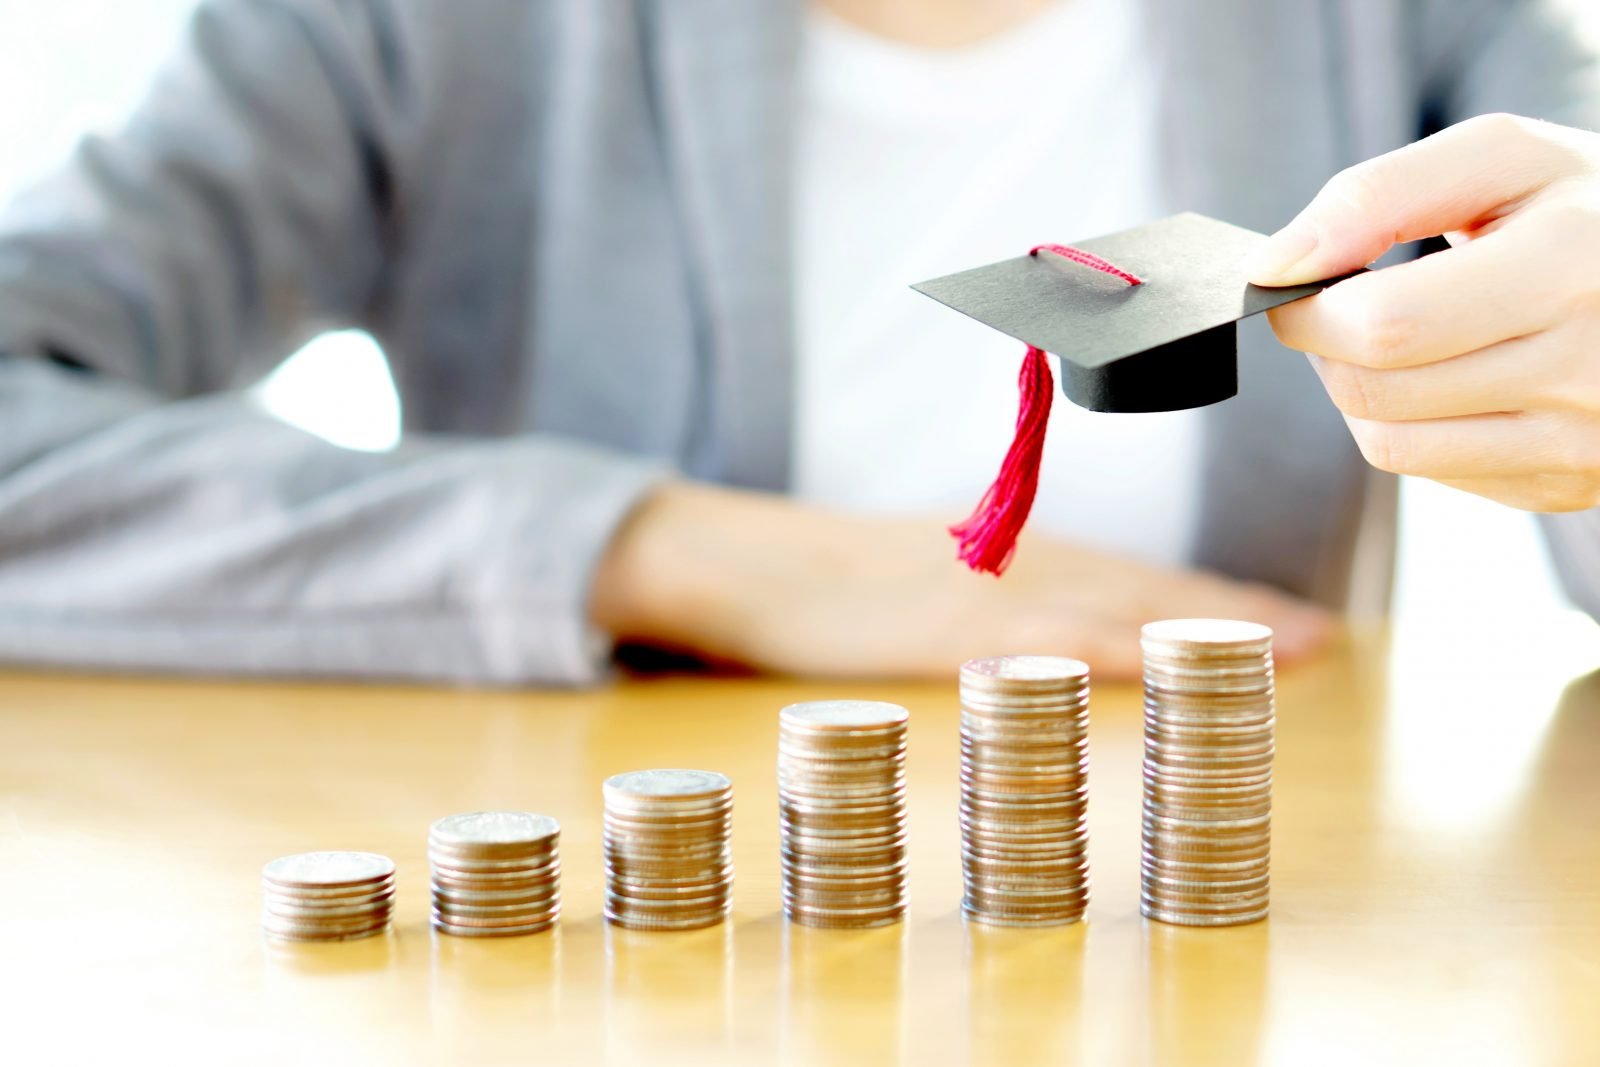 How to Manage Student Finance